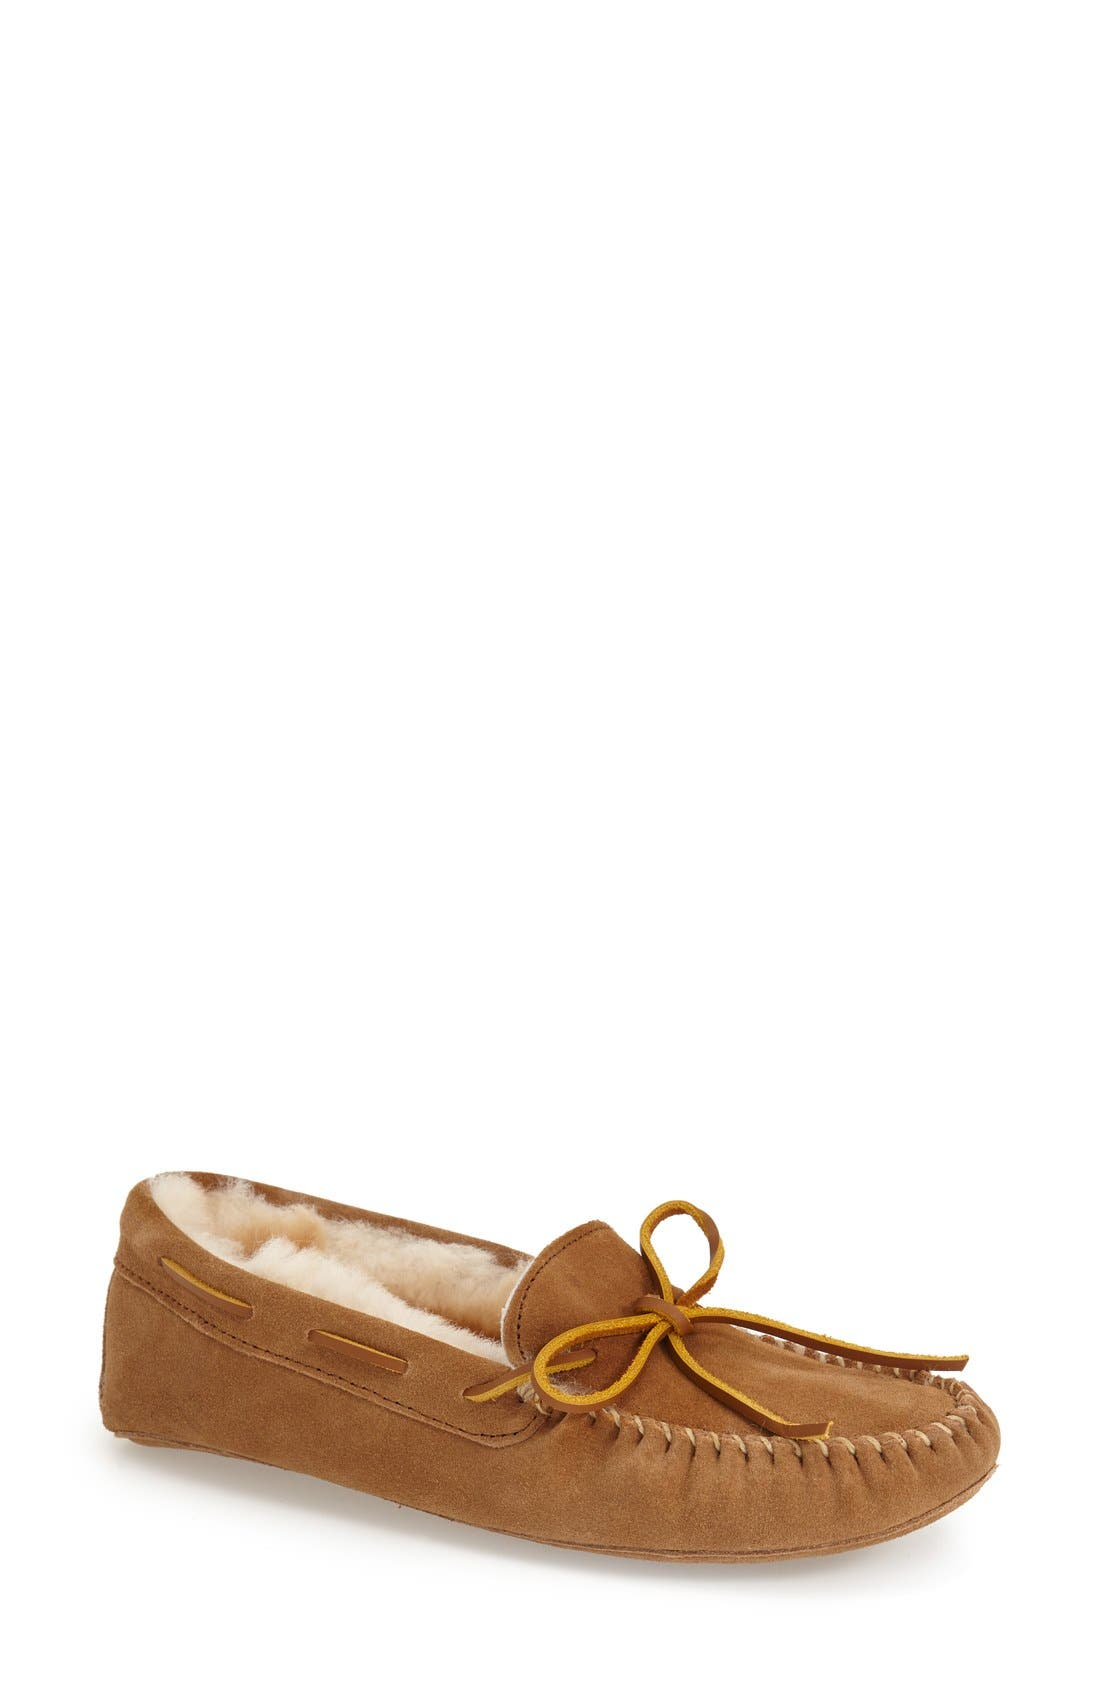 Minnetonka Sheepskin Moccasin Slipper (Women)